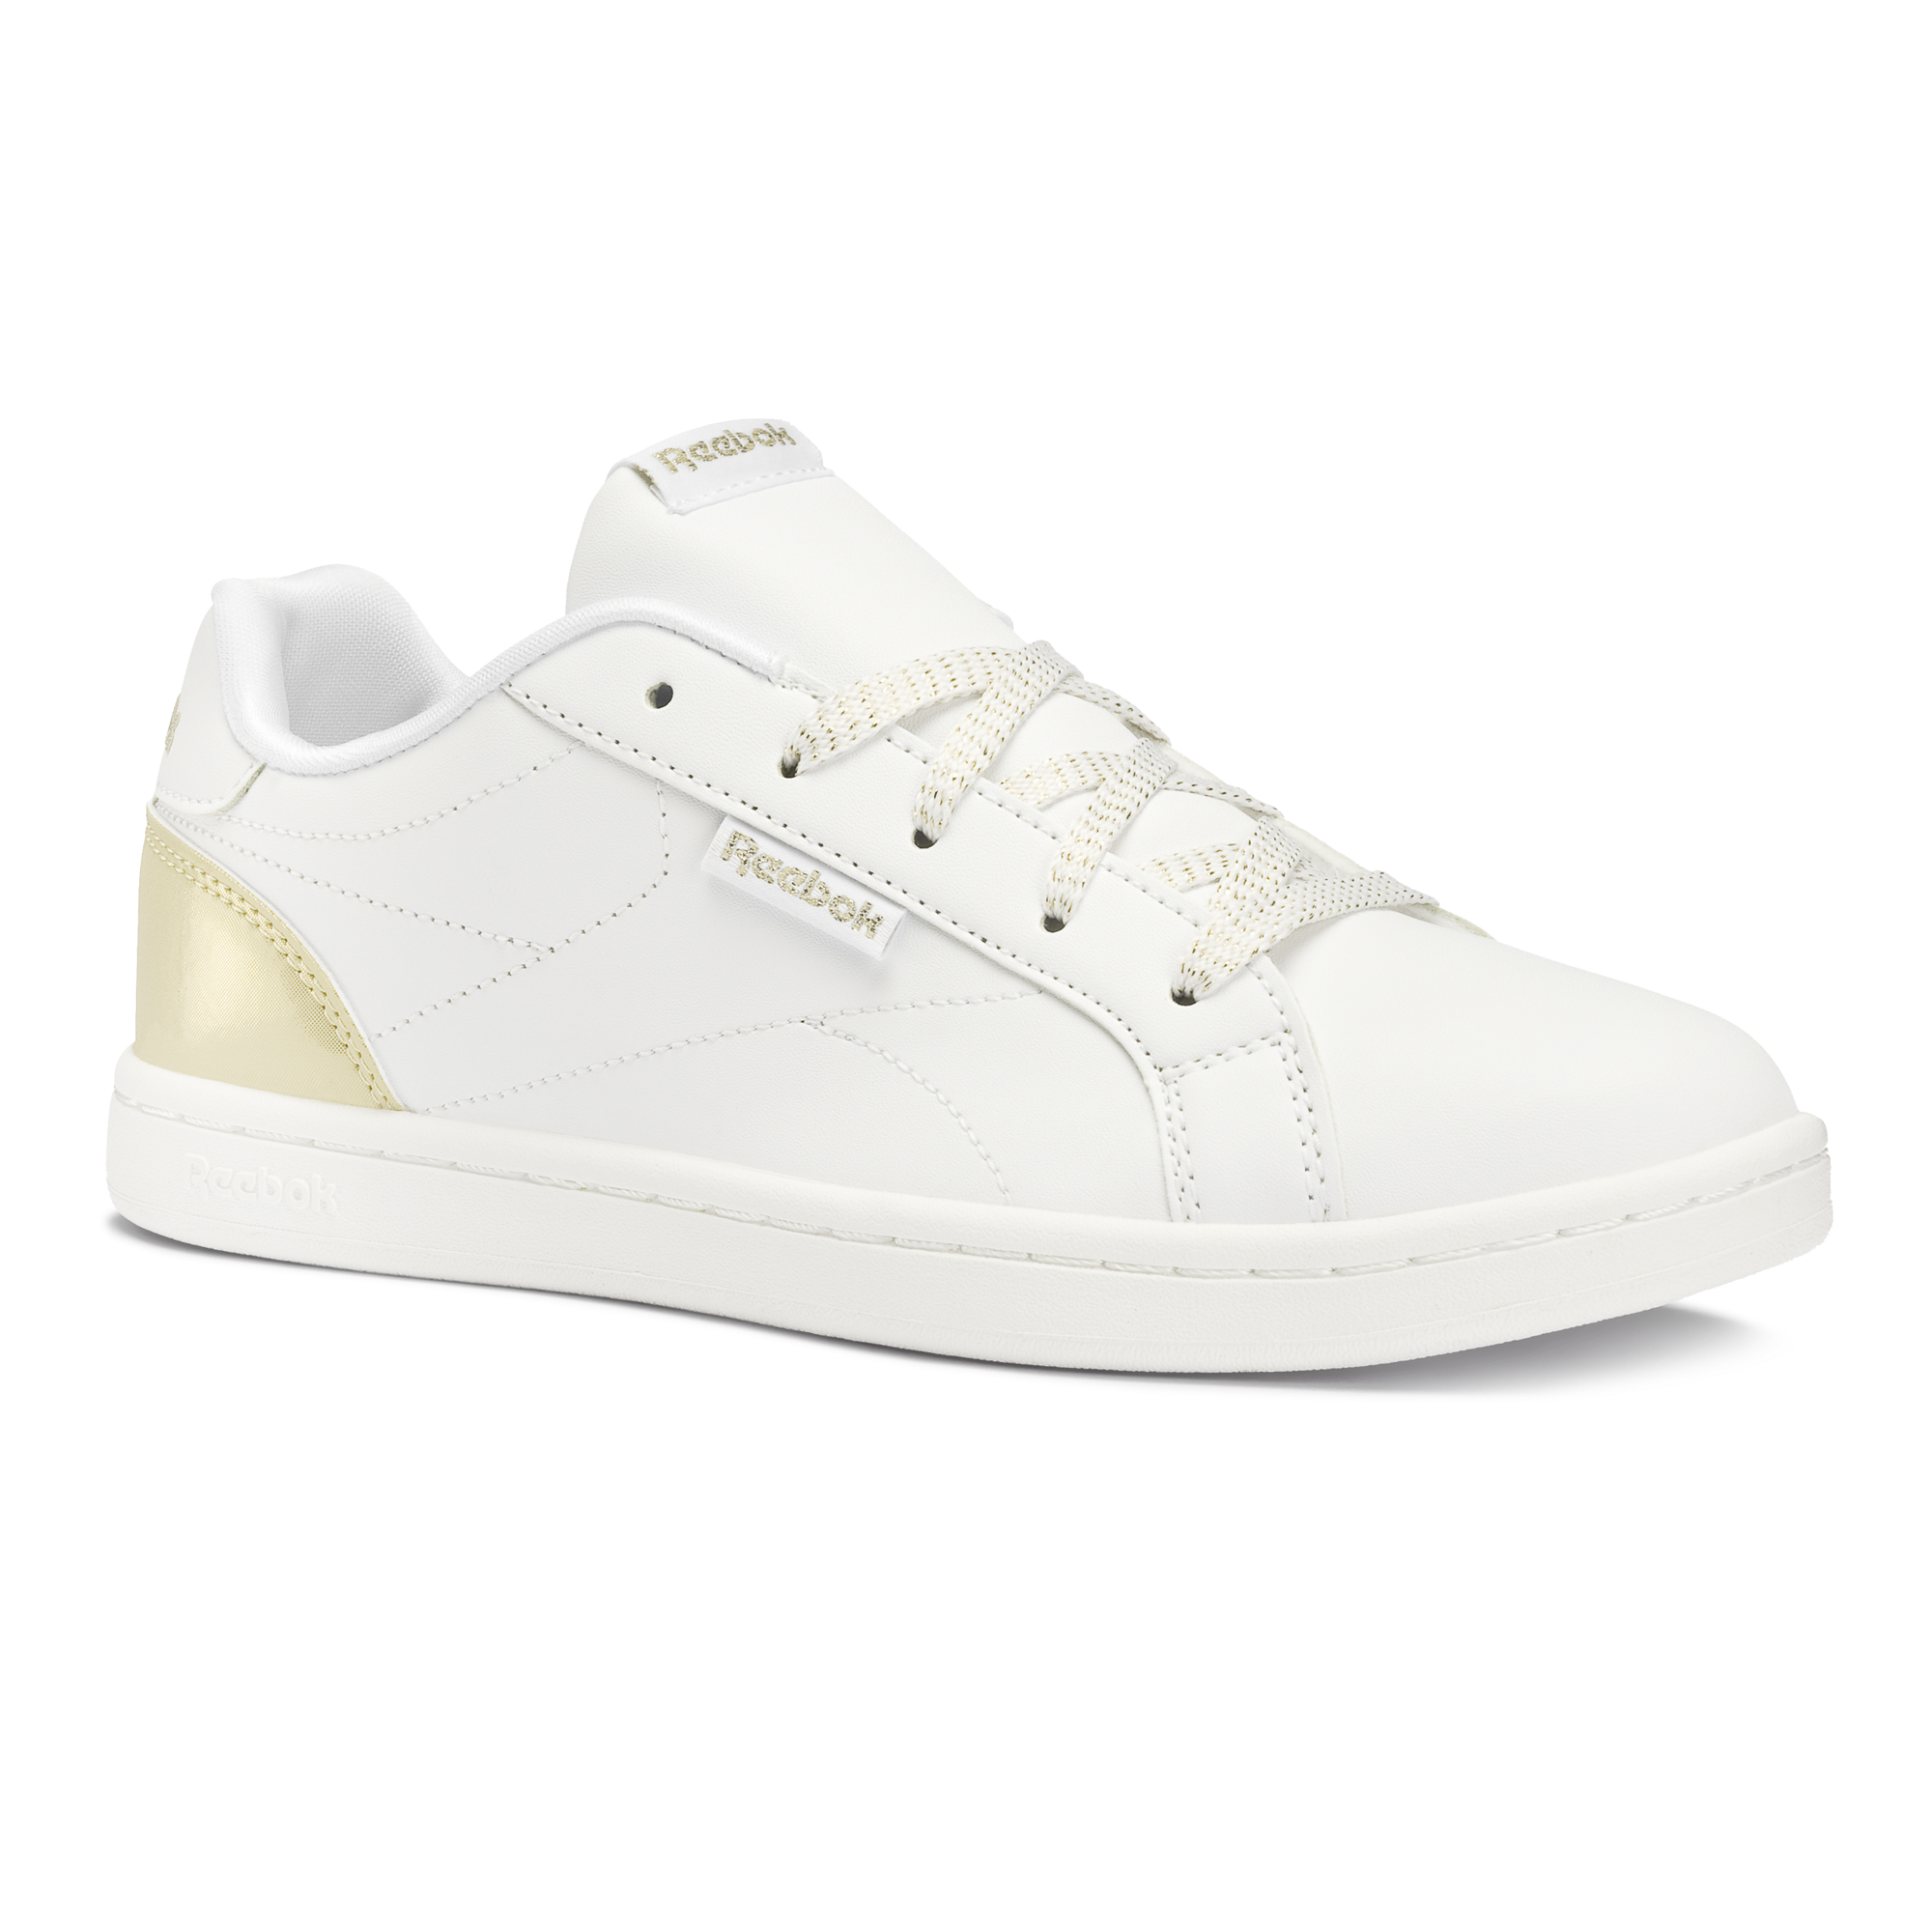 REEBOK ROYAL COMPLE WHITE/GOLD SPARKLE